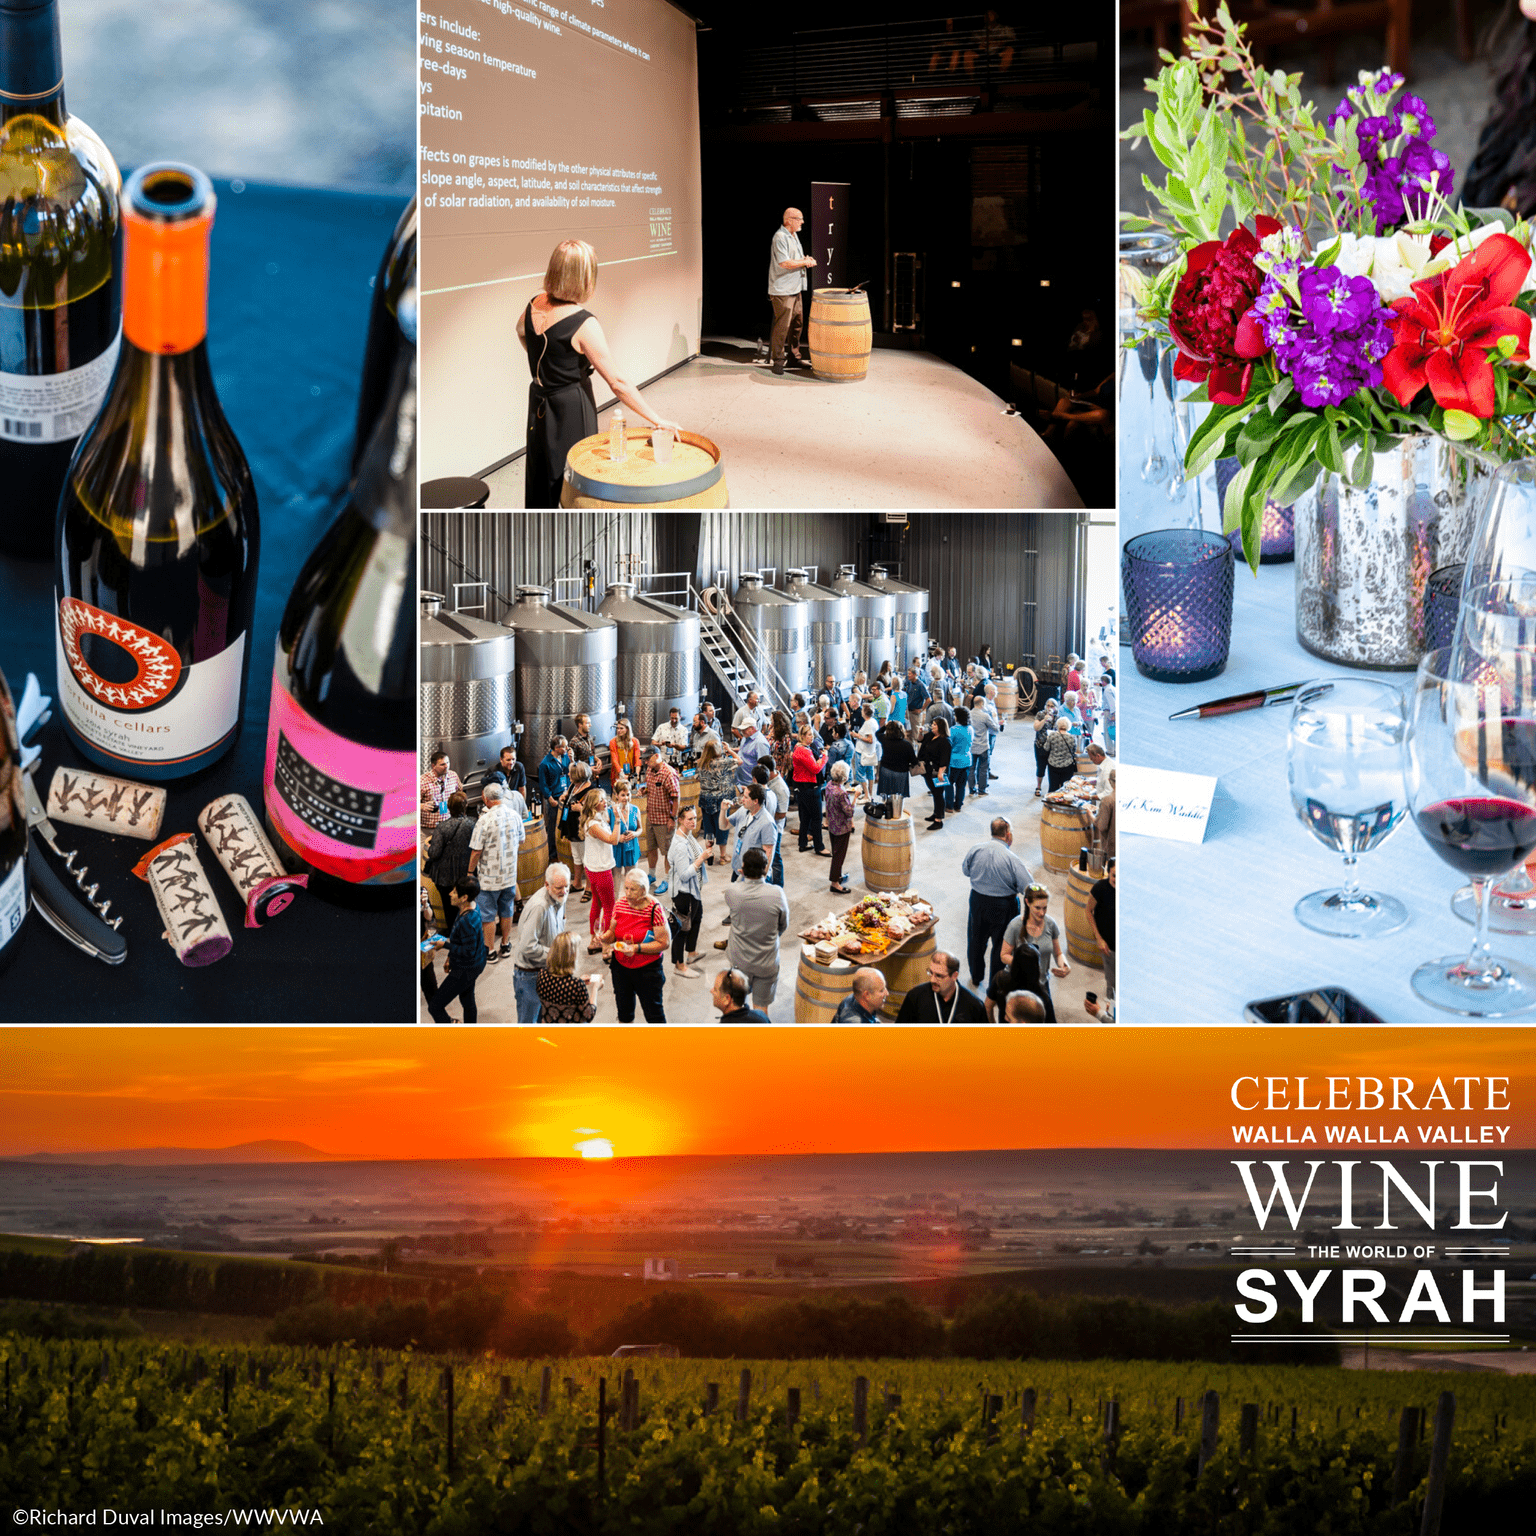 Celebrate 2020 EIgON6.tmp  - Celebrate Walla Walla Valley Wine – The World of Syrah